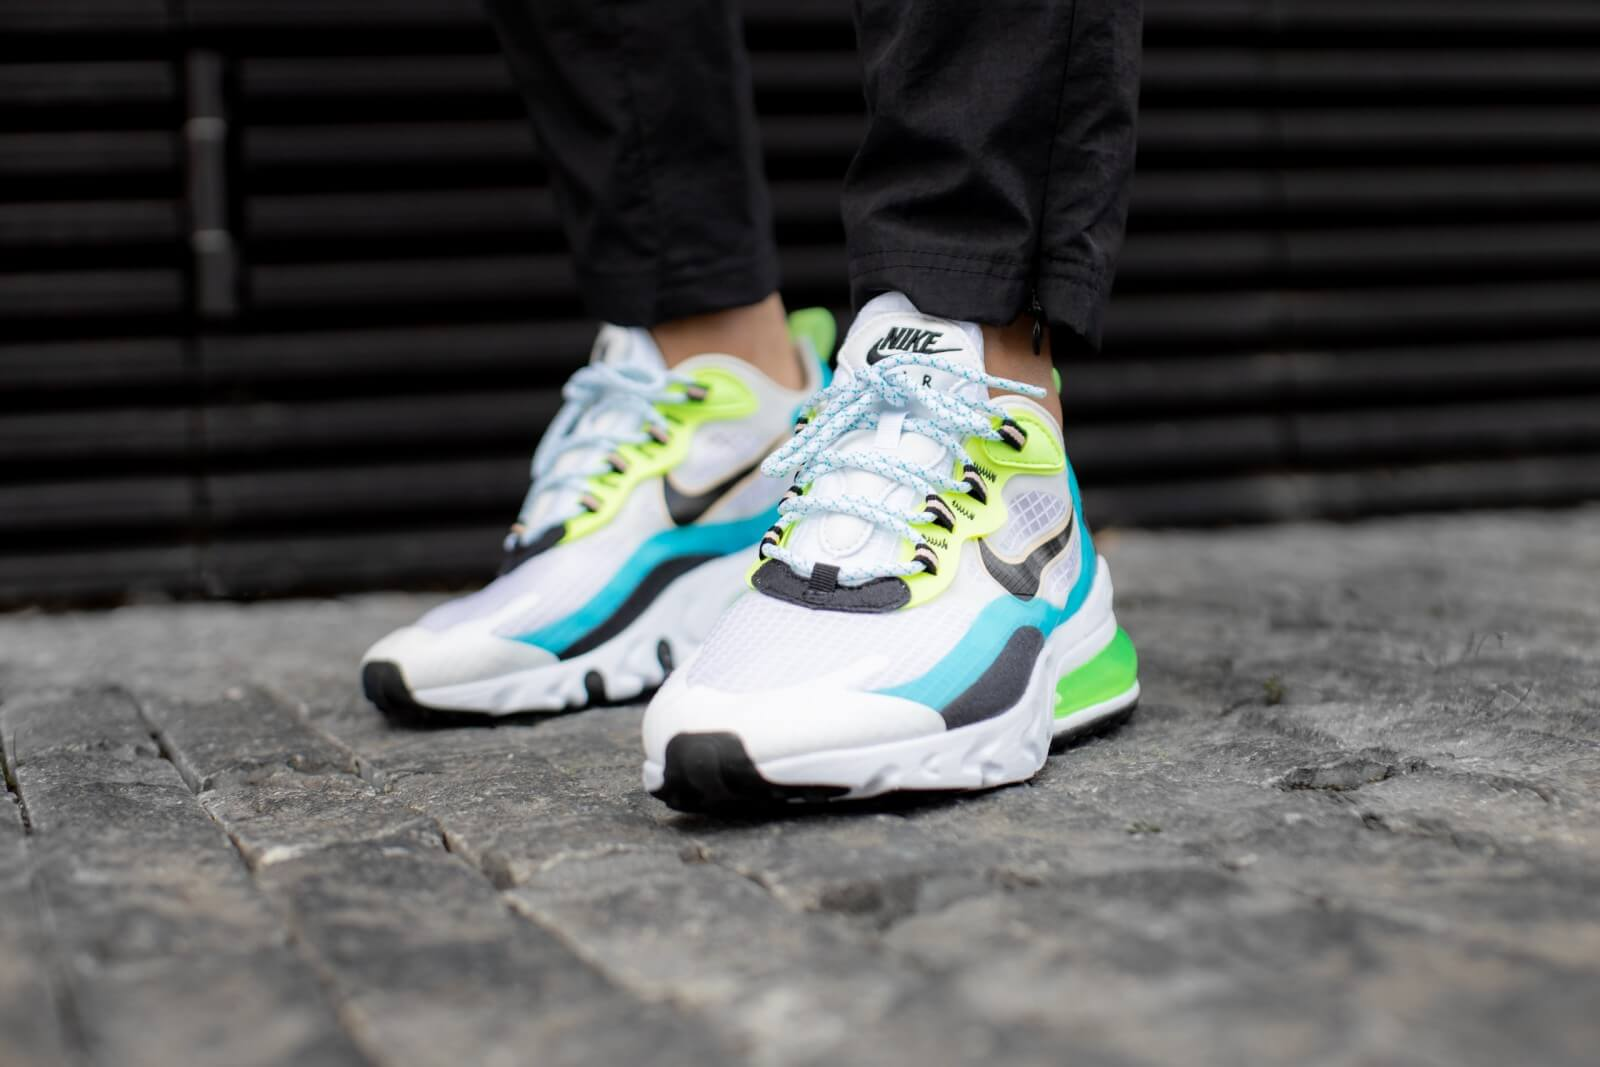 Nike Air Max 270 React SE Oracle Aqua/Black-Ghost Green